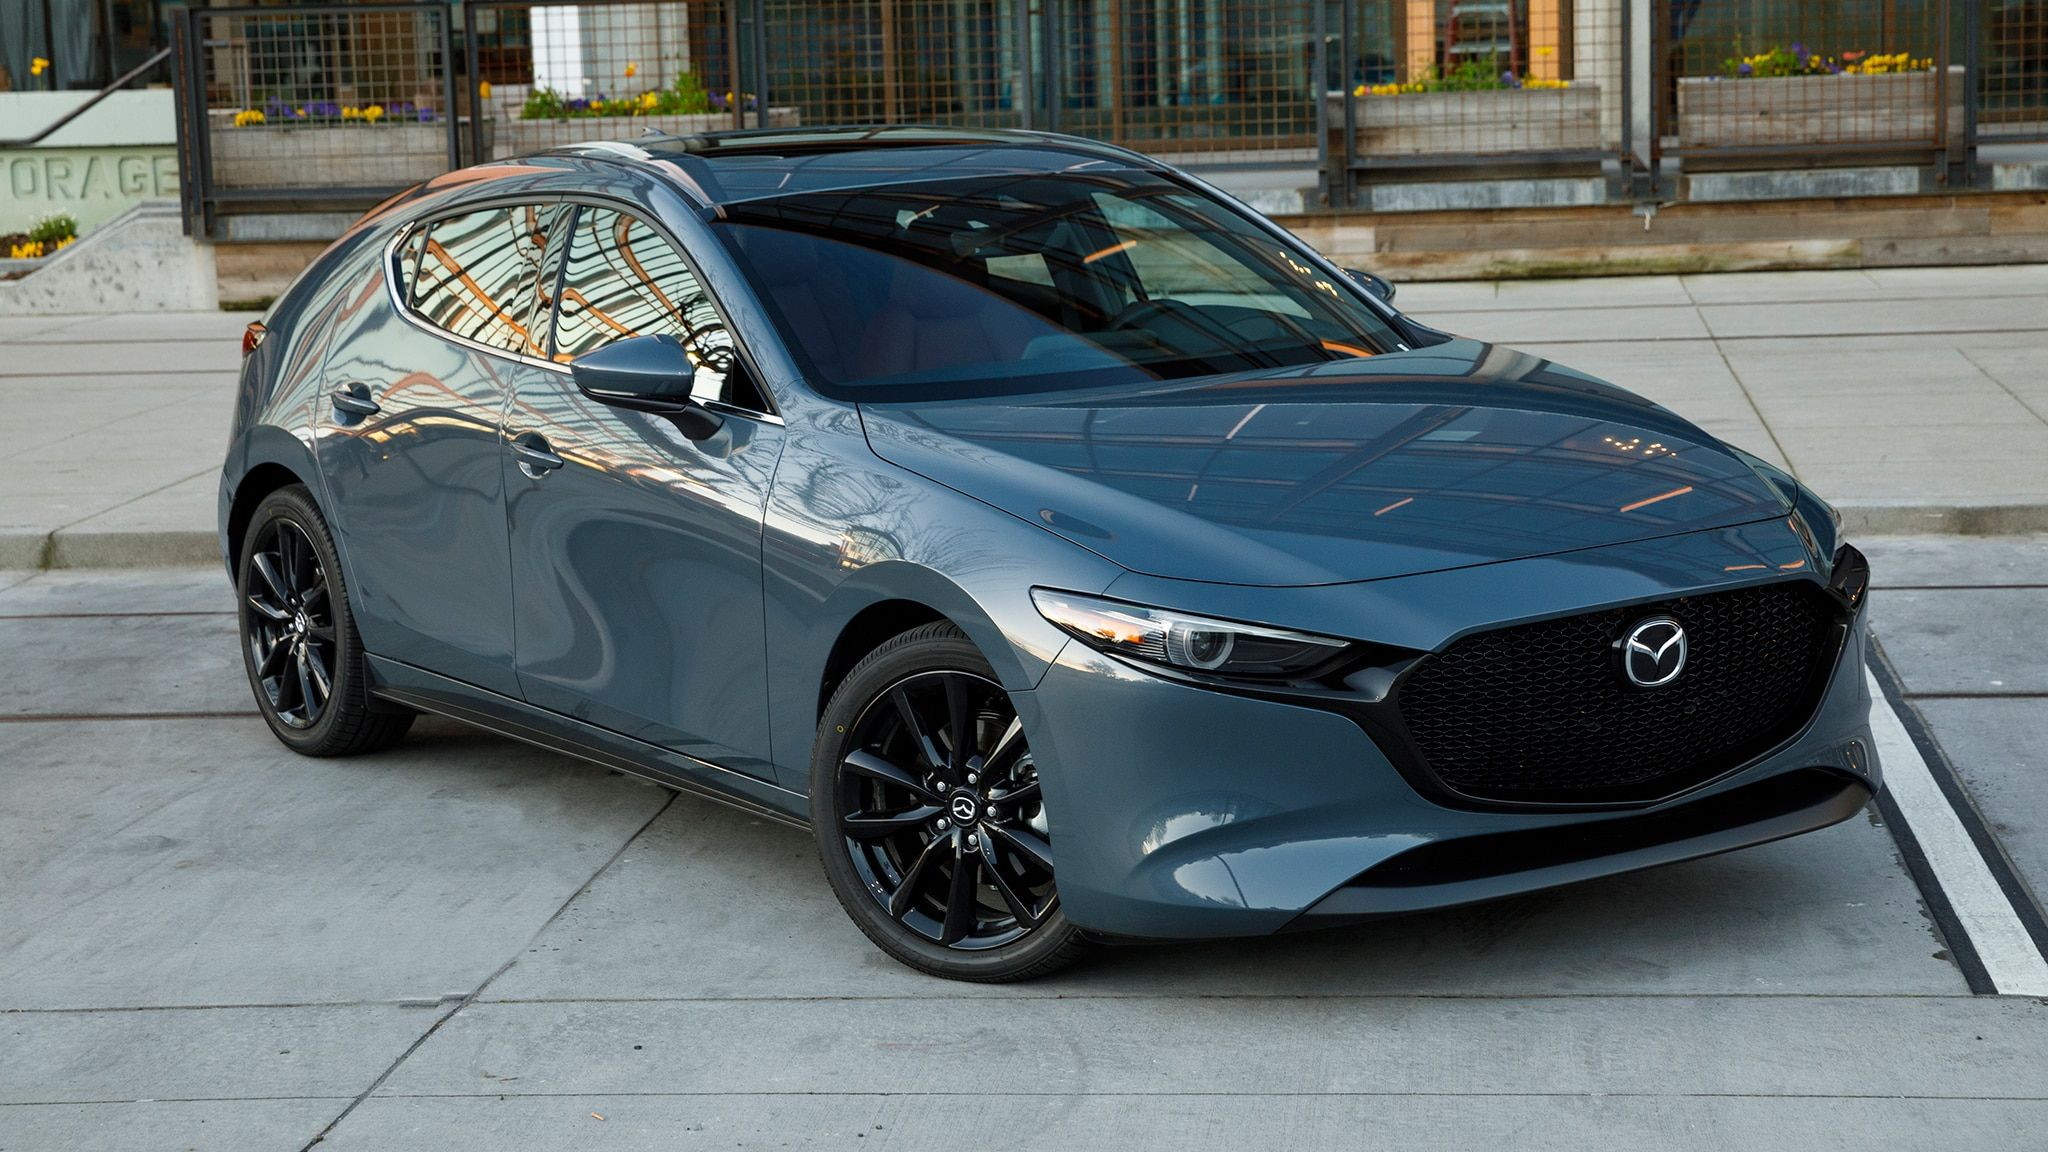 Turbocharged Mazda 3 Was Mocked Before It Was Released On July 8th In 2021 Mazda Cars Mazda Mazda 3